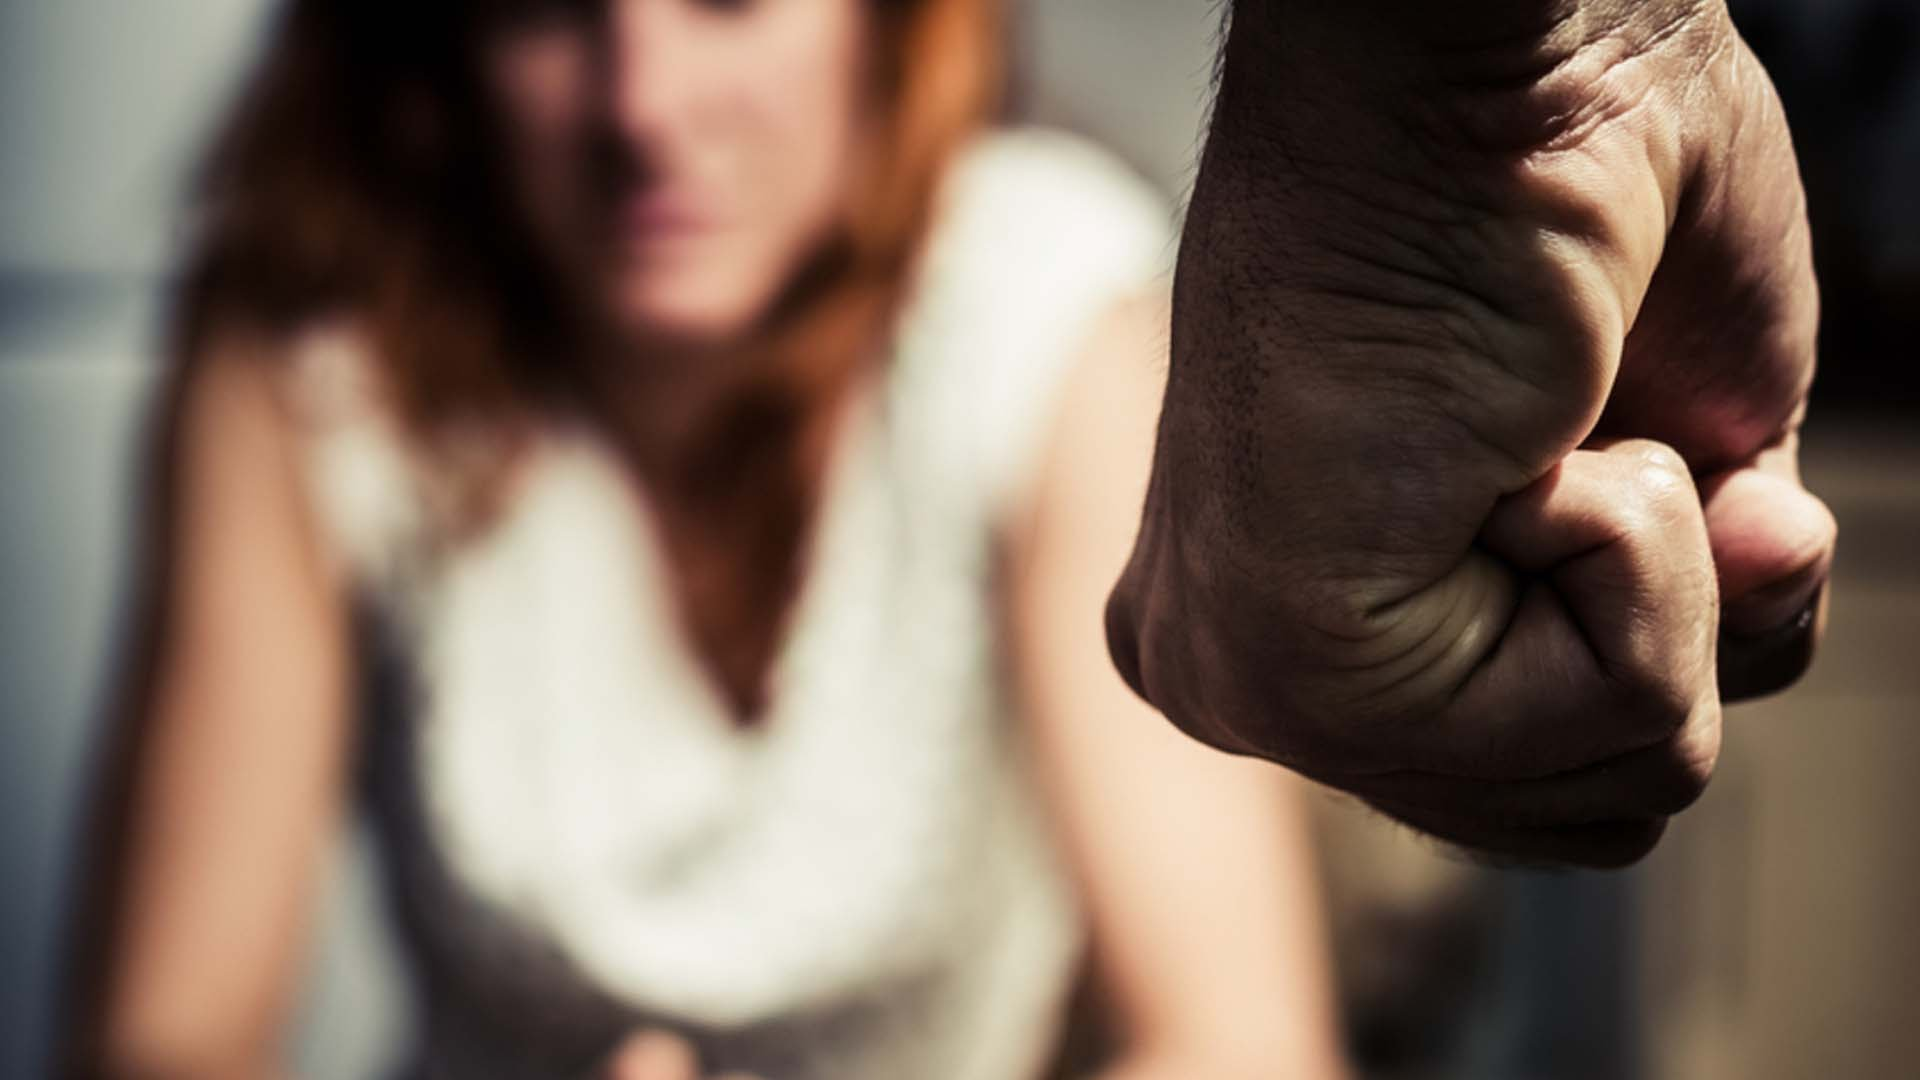 domestic violence intervention with women in The domestic violence intervention program (dvip) reports that the fbi estimates violence will occur during the course of two-thirds of all marriages white, black and hispanic women all incur about the same rates of violence committed by an intimate partner, according to the dvip.